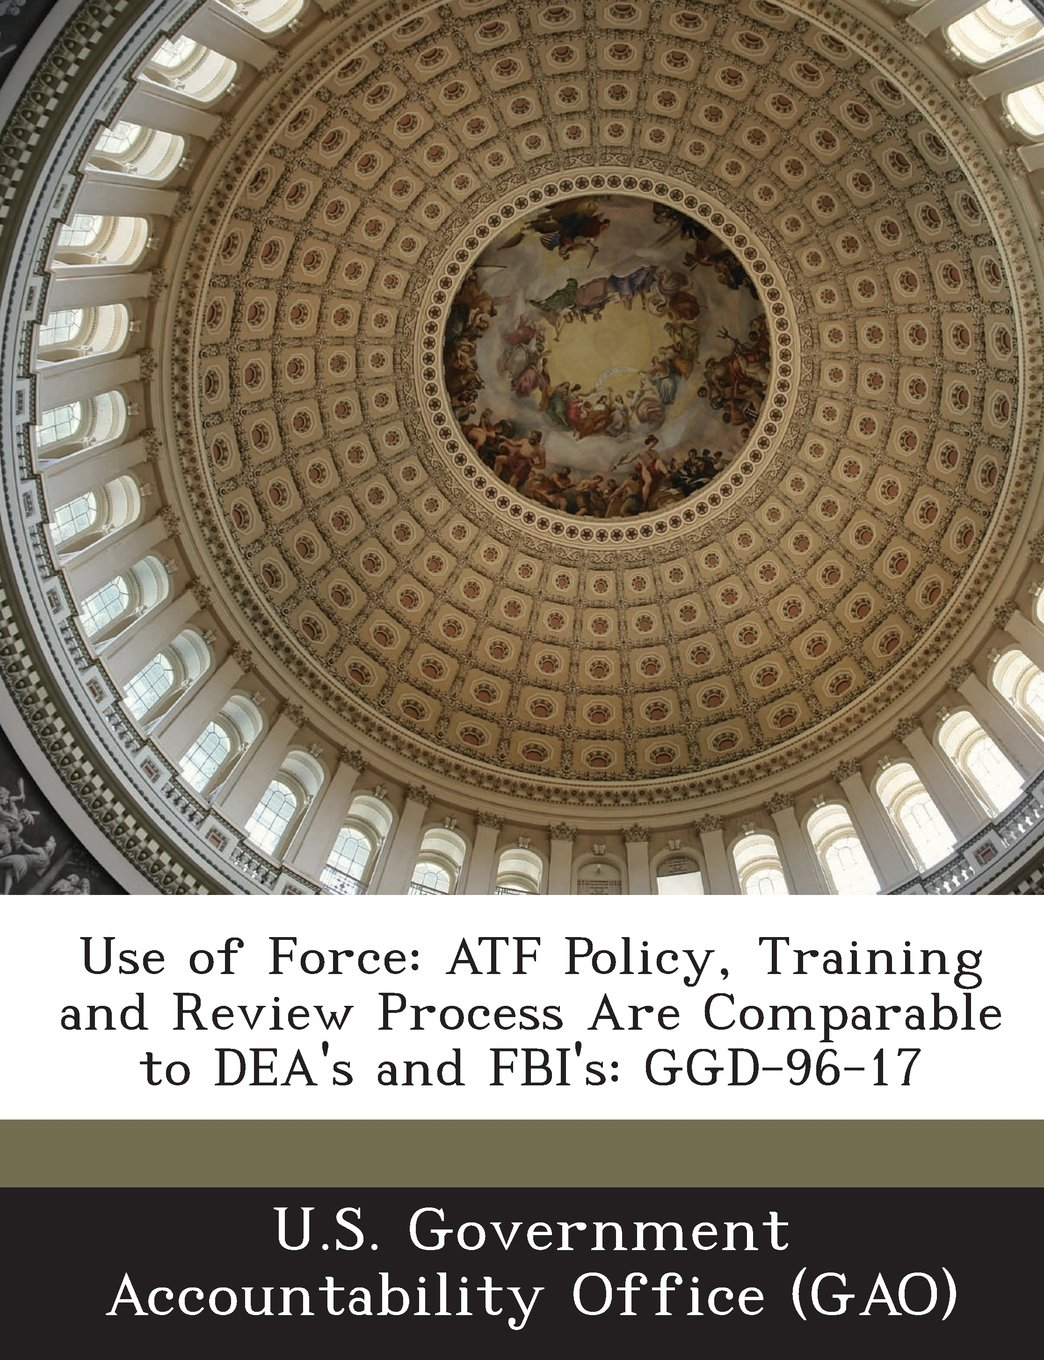 Use of Force: Atf Policy, Training and Review Process Are Comparable to Dea's and FBI's: Ggd-96-17 ePub fb2 book